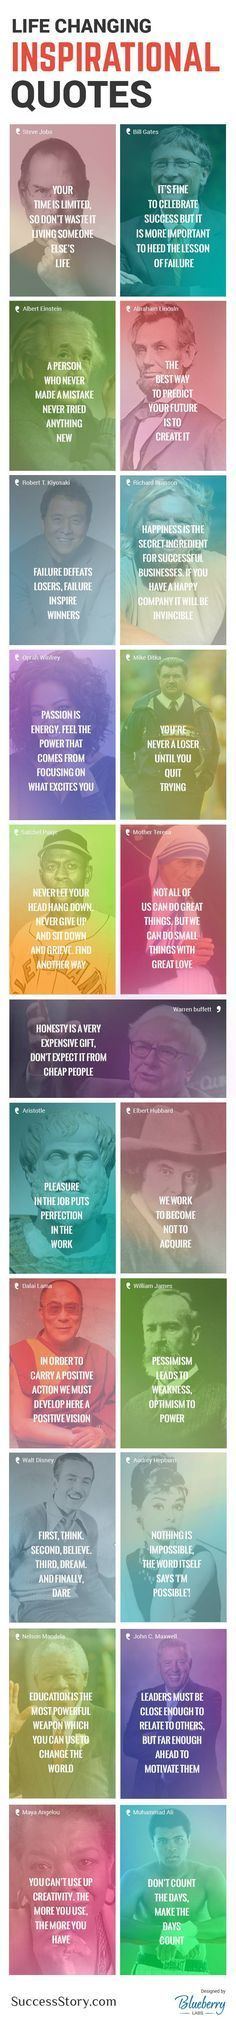 Something about the best inspirational quotes resonates with us, lifts us out of a funk, and gives direction. Check these out and pick your favorite!